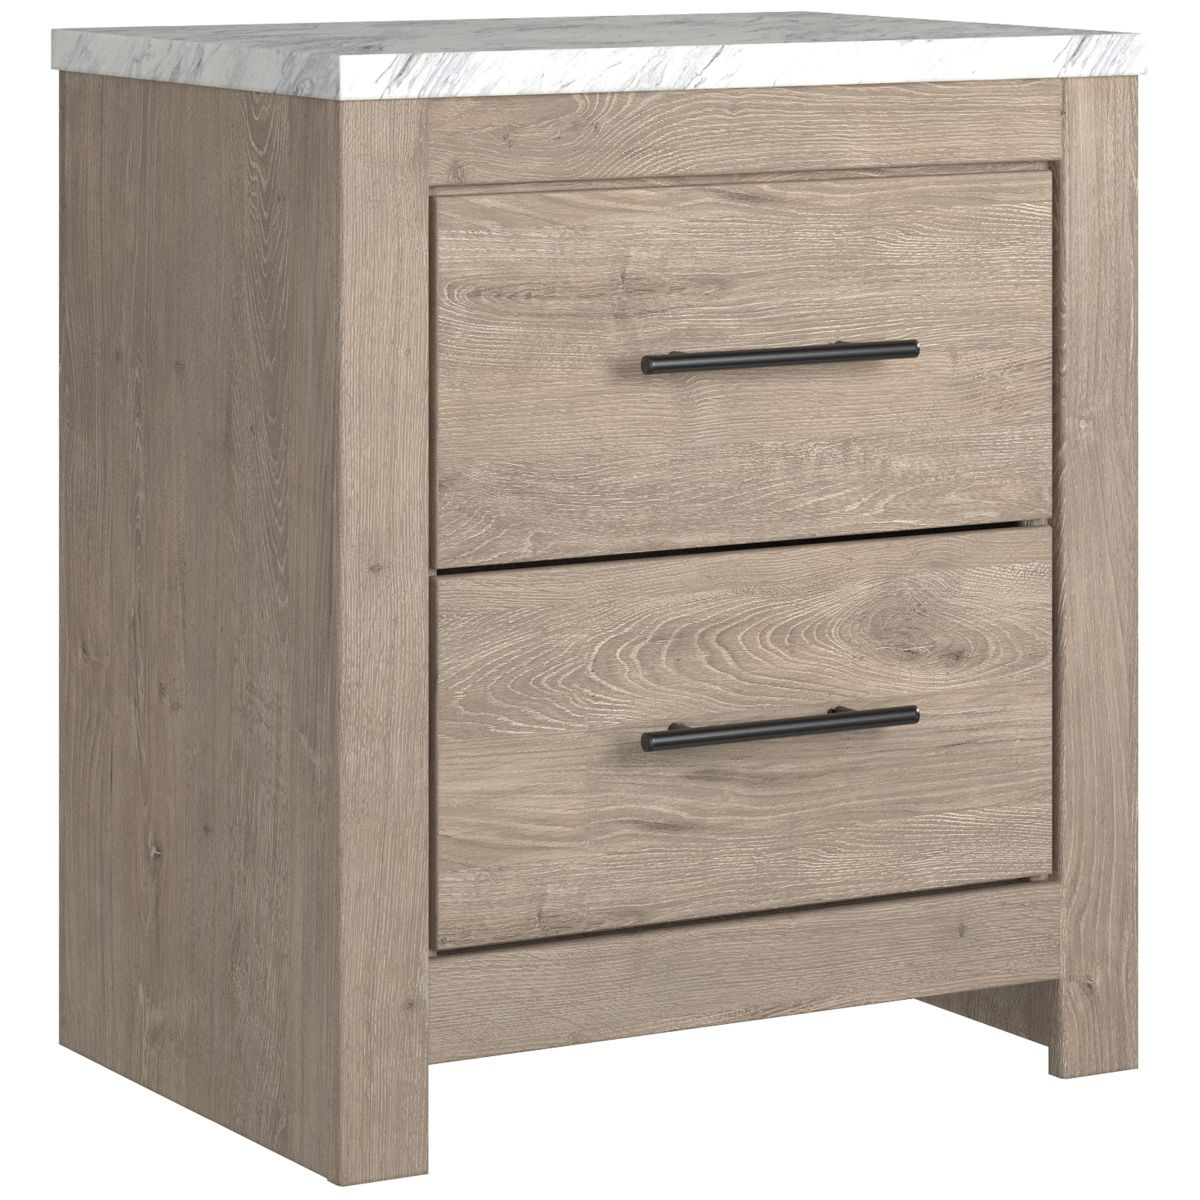 Picture of Senniberg Nightstand